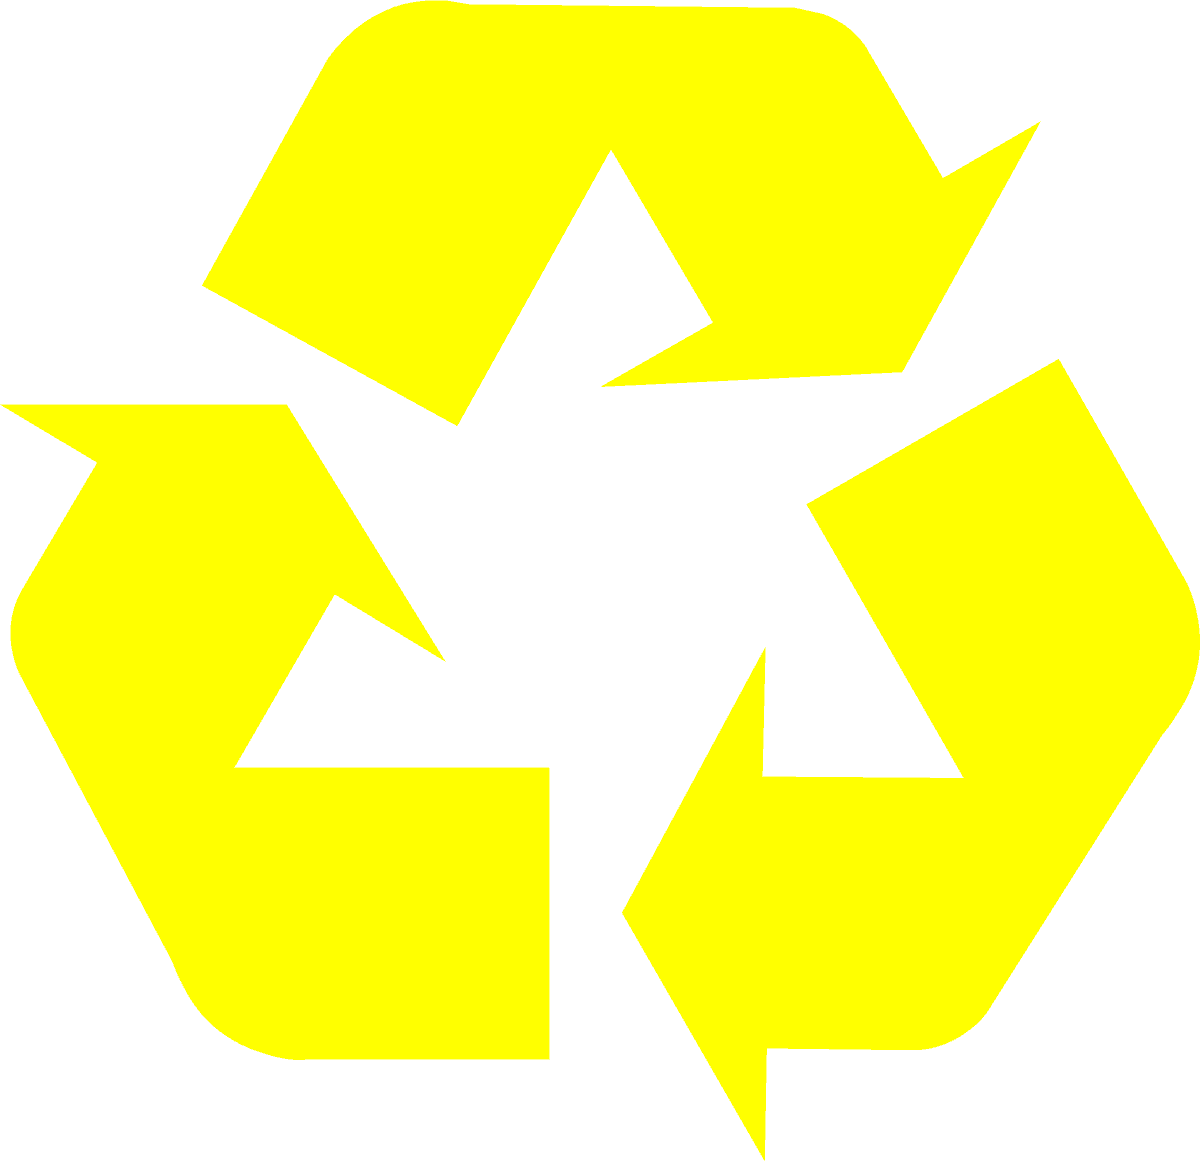 recycling-symbol-icon-solid-yellow